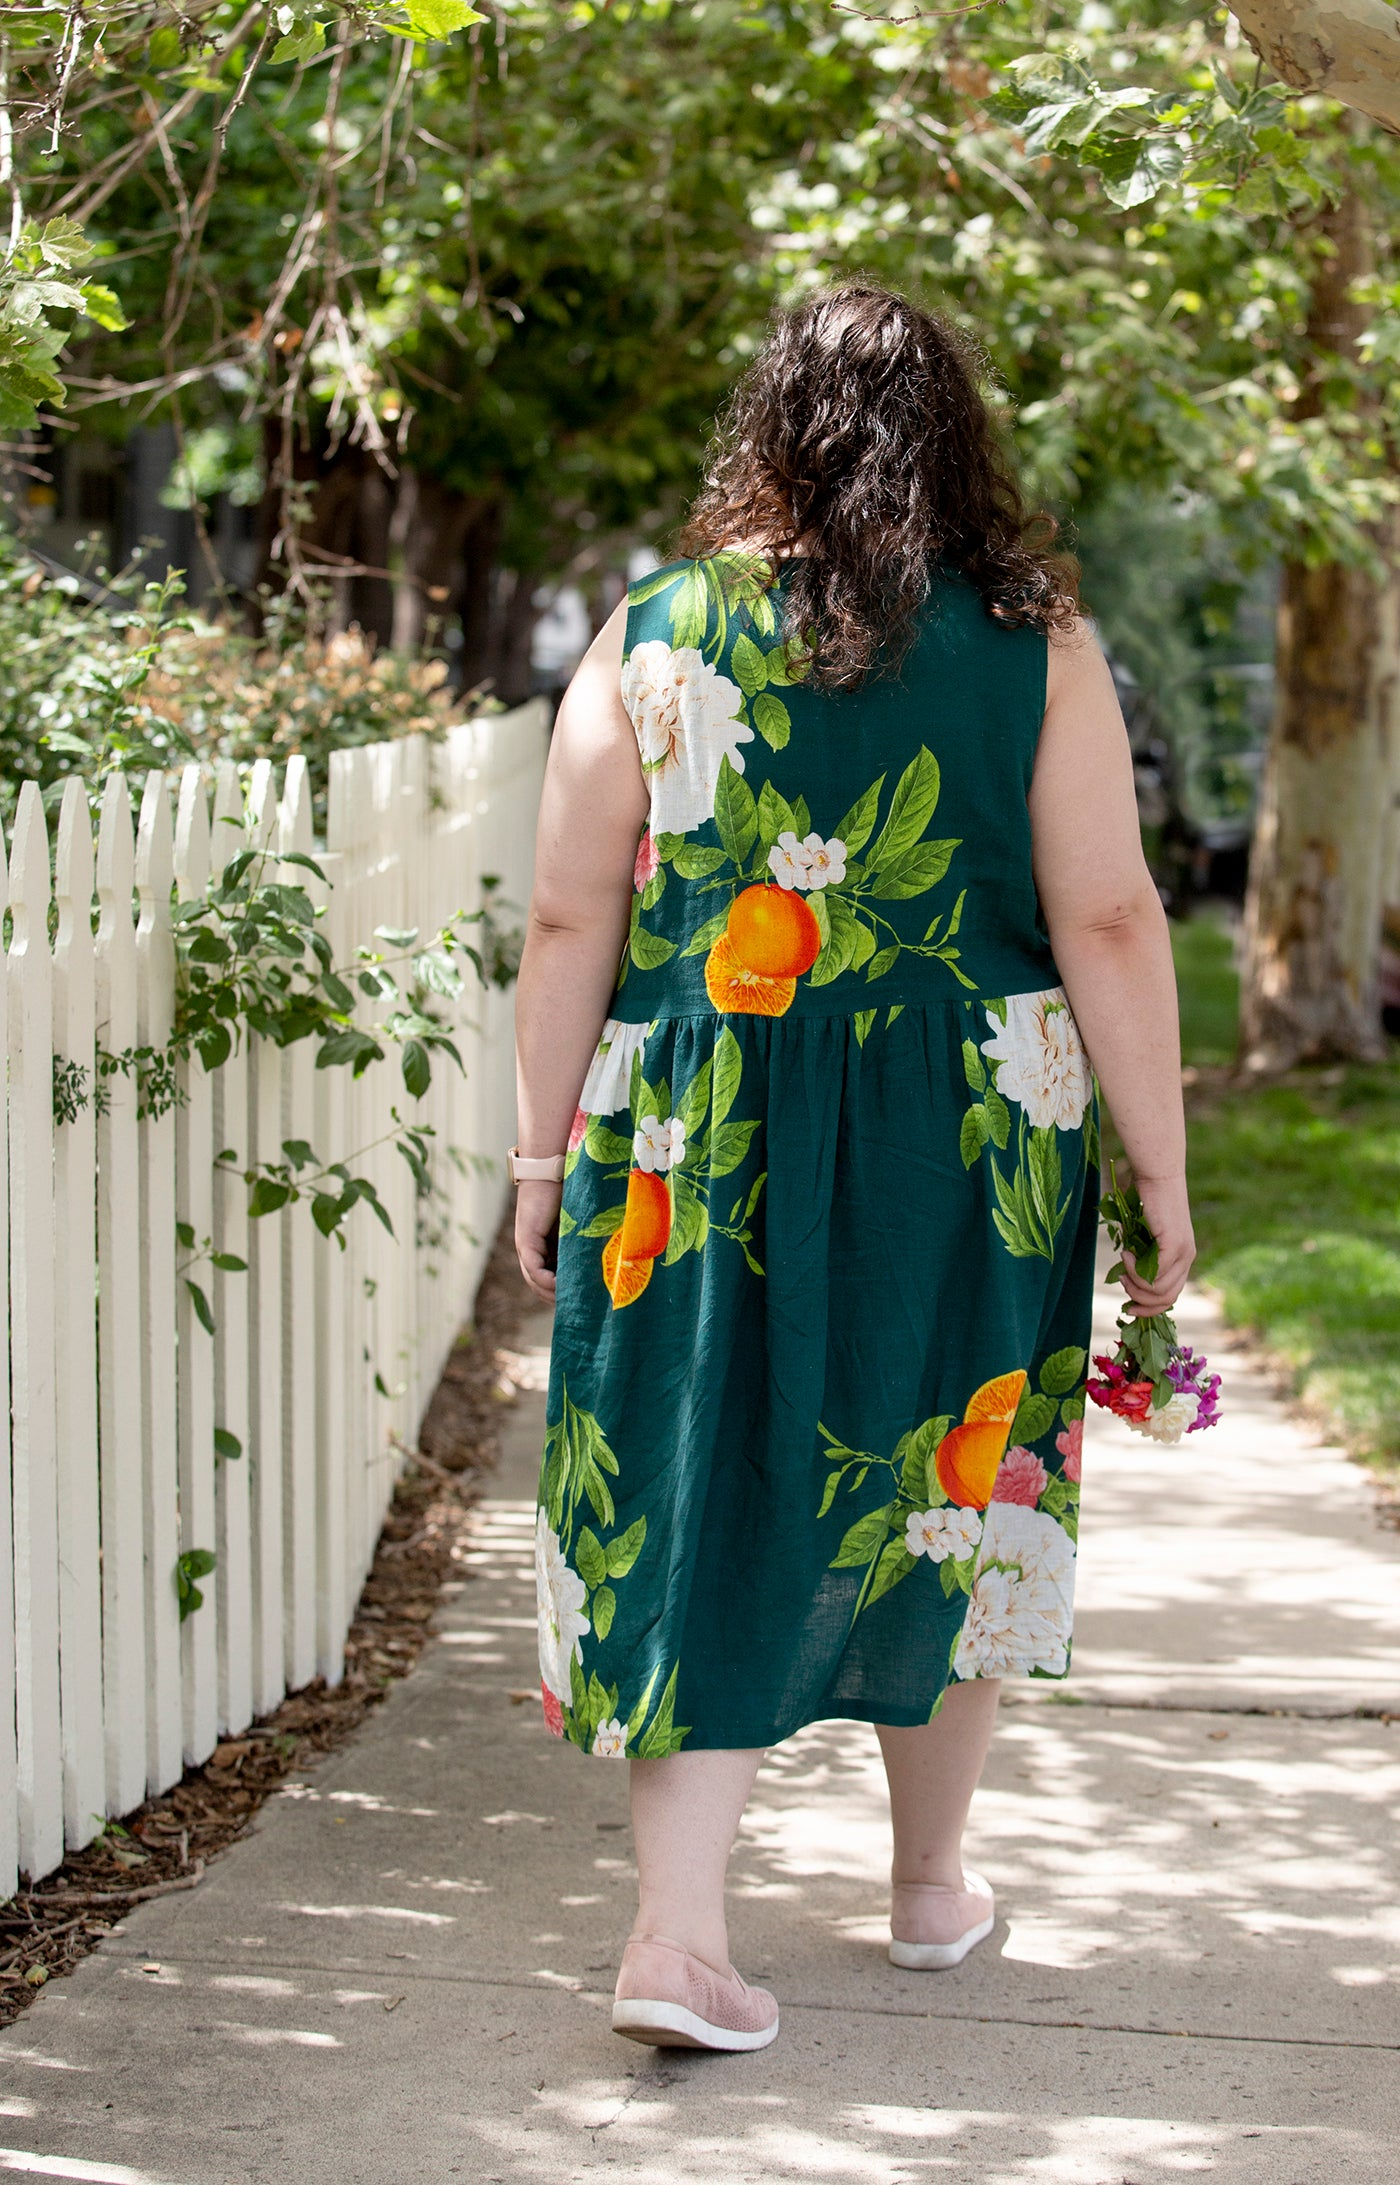 This is an image of a woman wearing a flower covered dress walking away down a side walk next to flowers and a white picket fence.